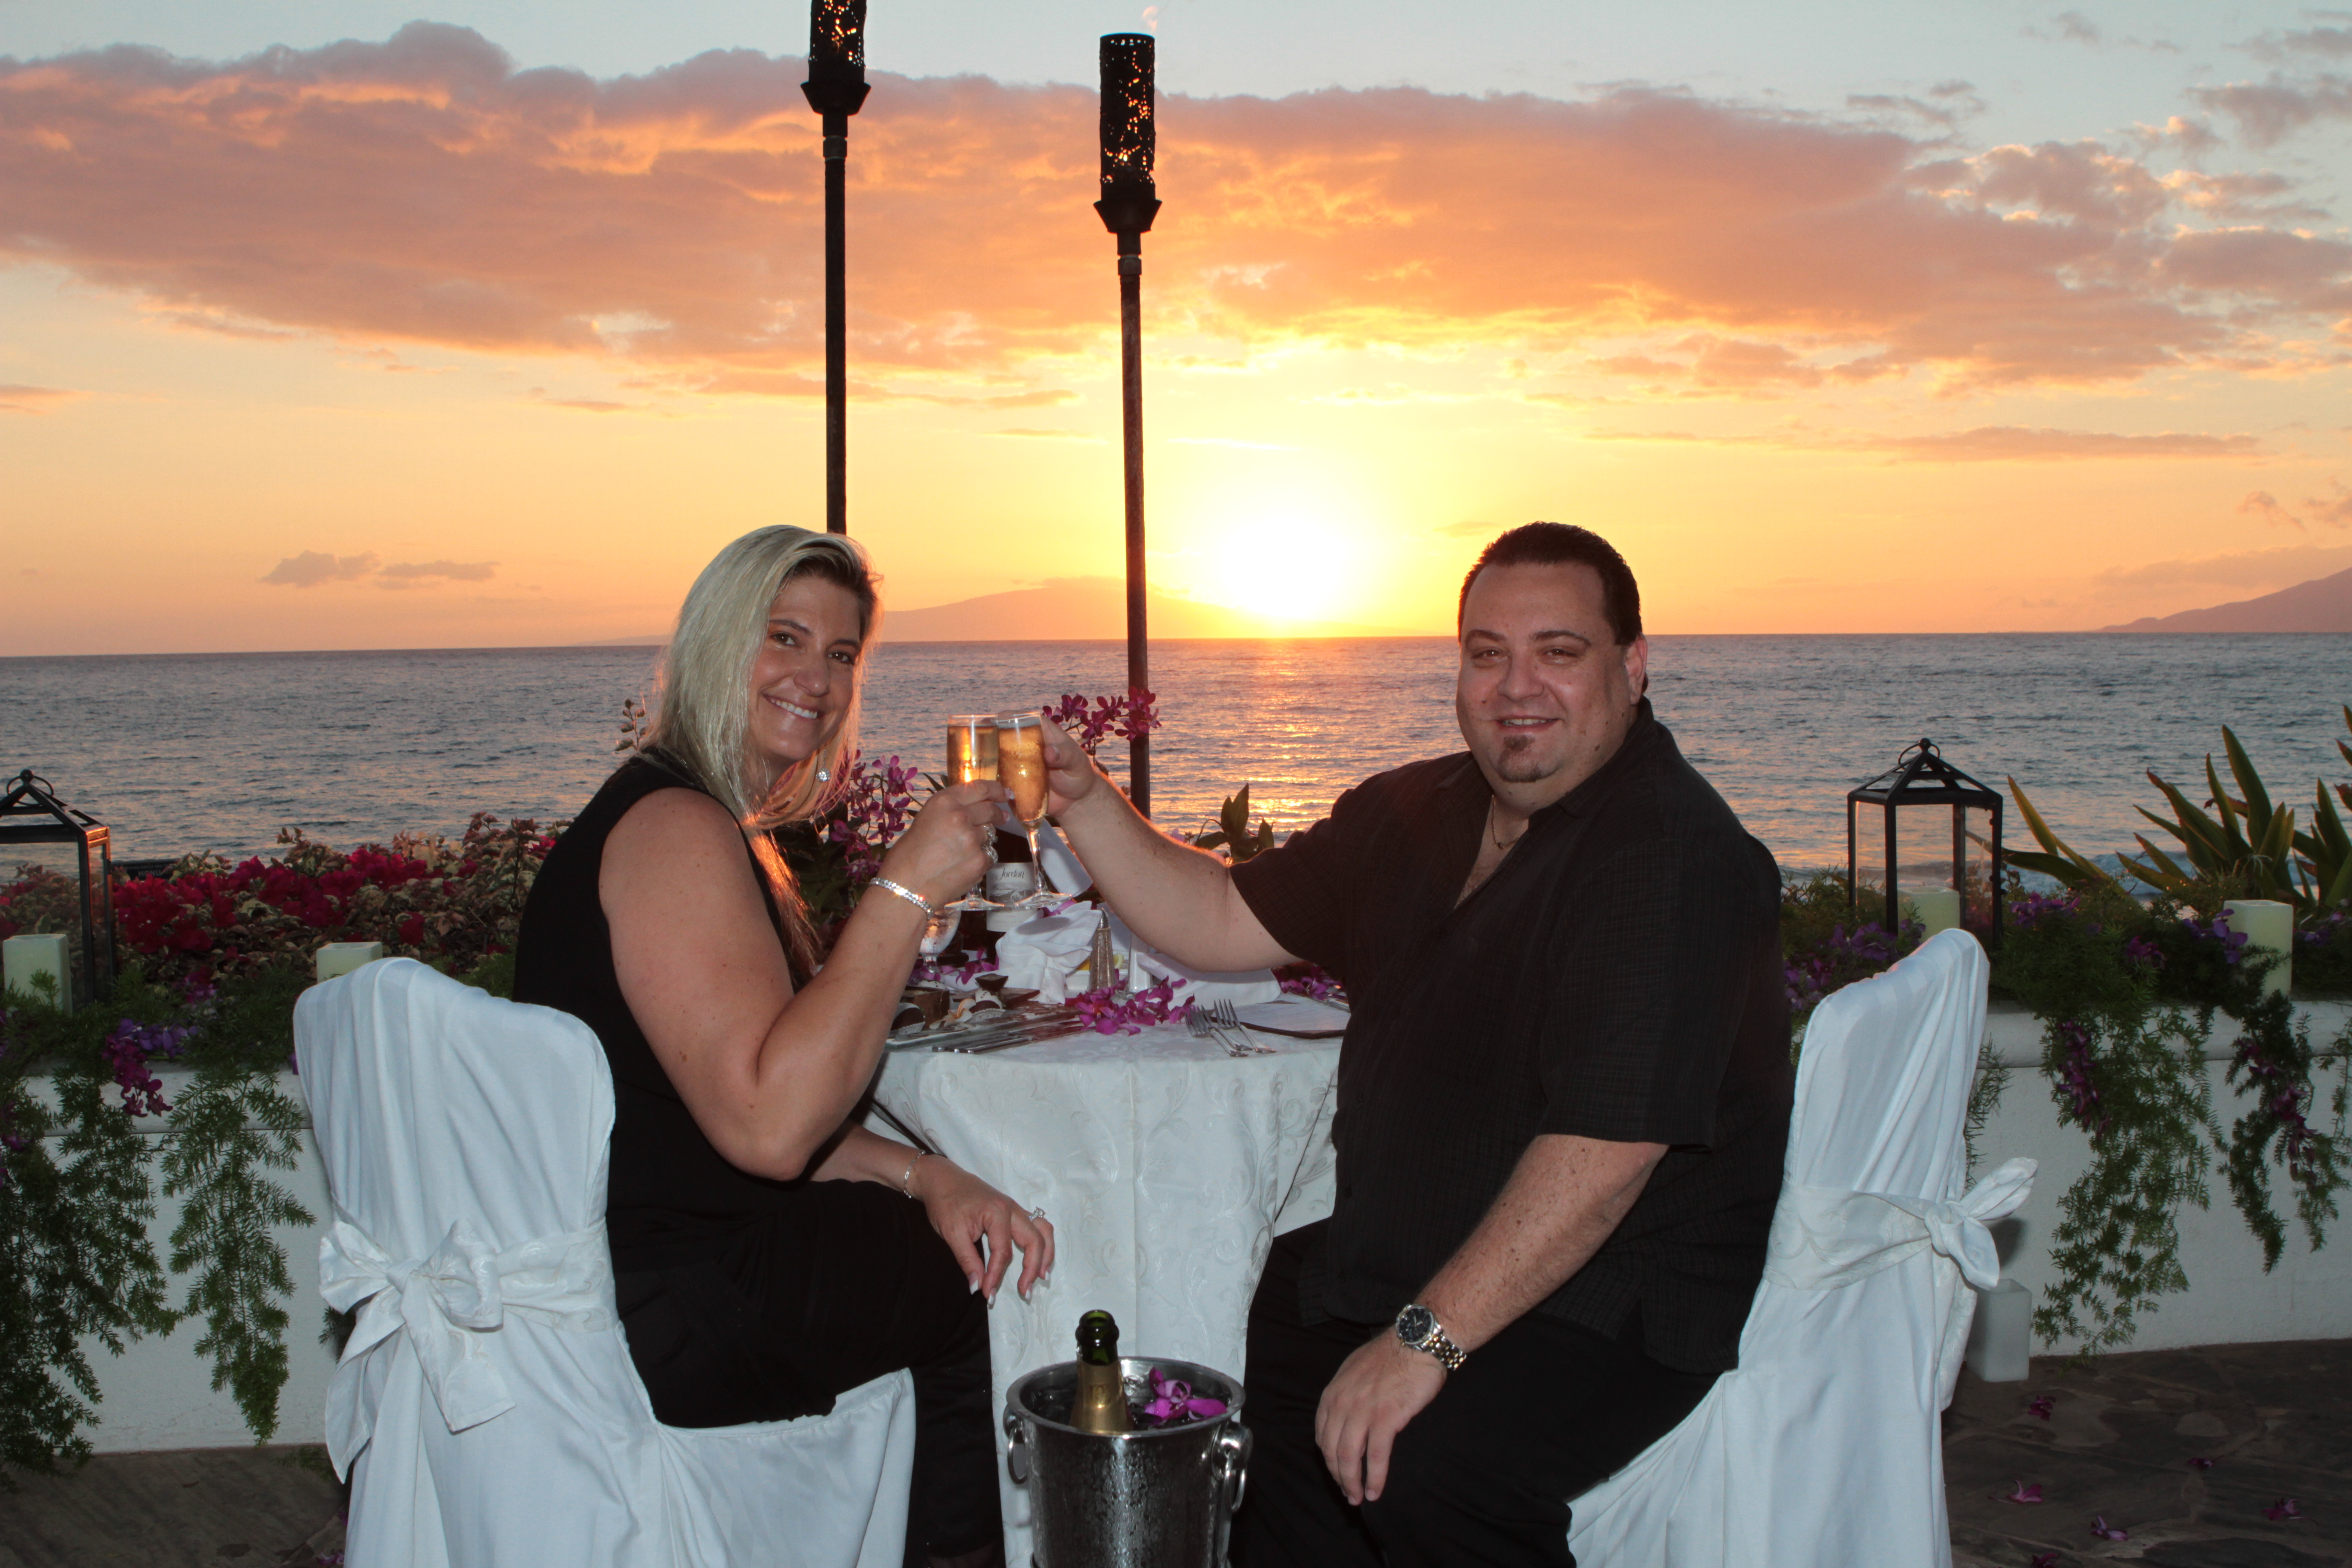 Matt Marples and Michele Rodgers' Honeymoon Registry